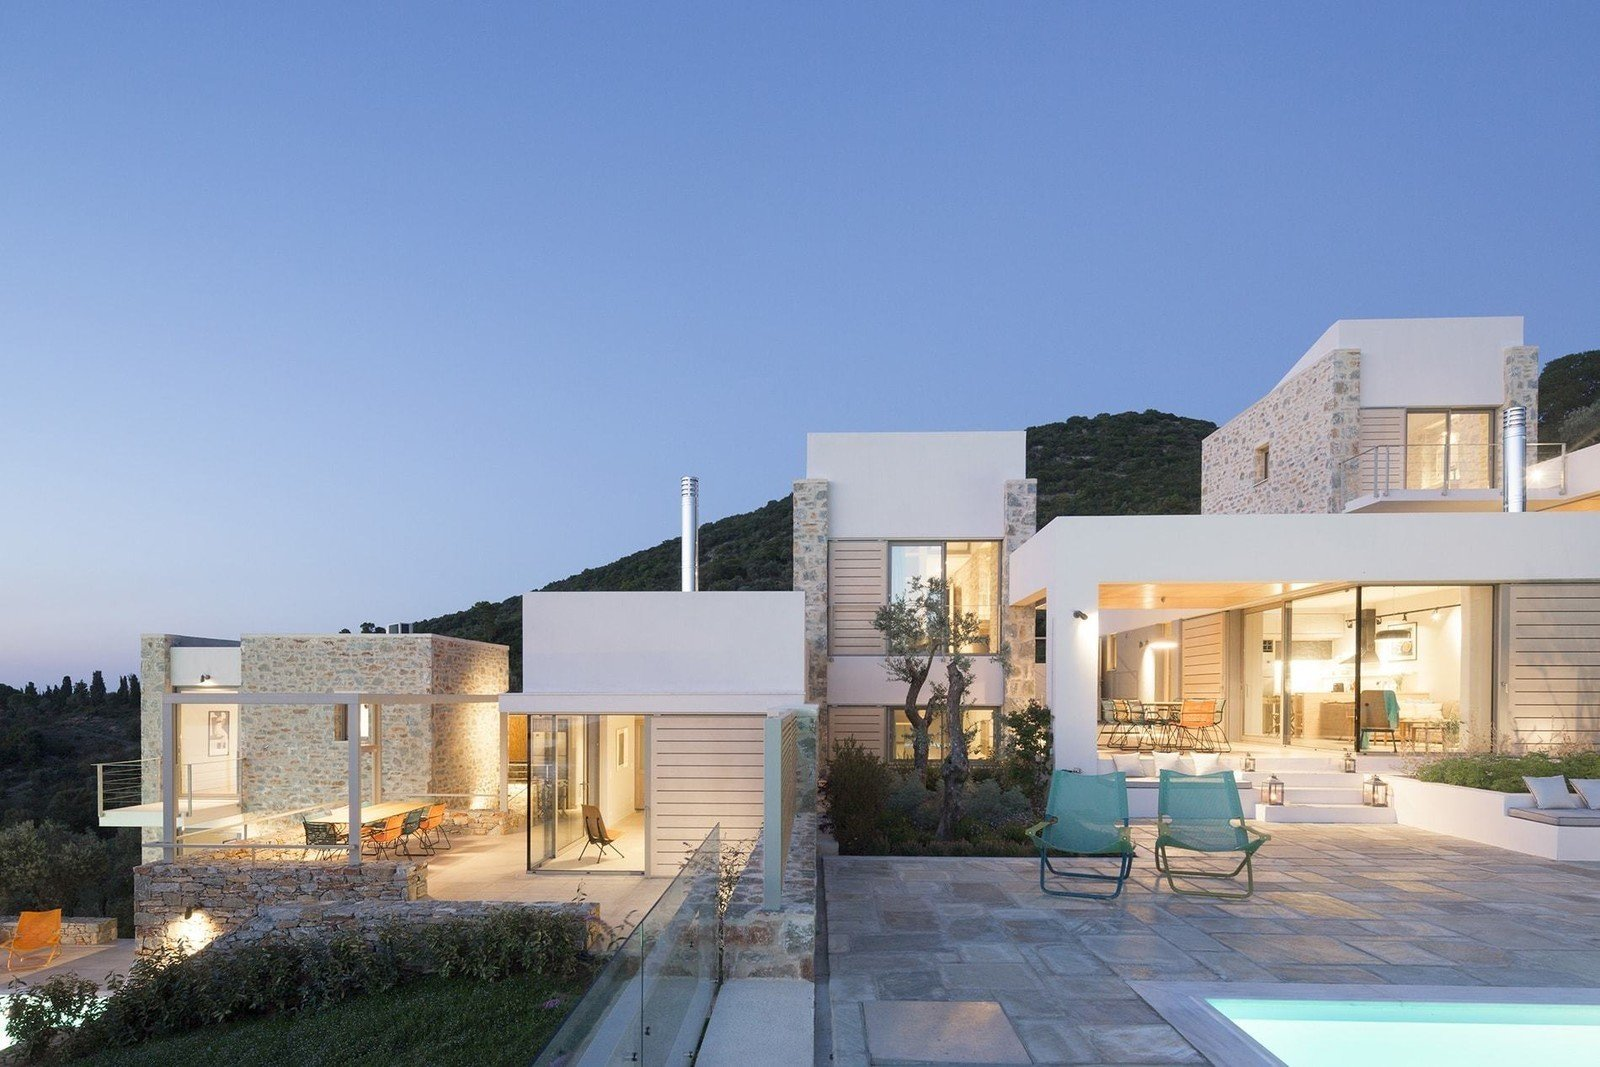 Designed by architect Nikitas Hatzimichalis, these villas are designed to work in harmony with the complex topography of a lush Greek island on the Aegean Sea. It effectively highlights views of the Skiathos beaches and coast of Pelion. Each villa has its own swimming pool that overlooks the sea, and is ensconced by green verandas for added privacy.